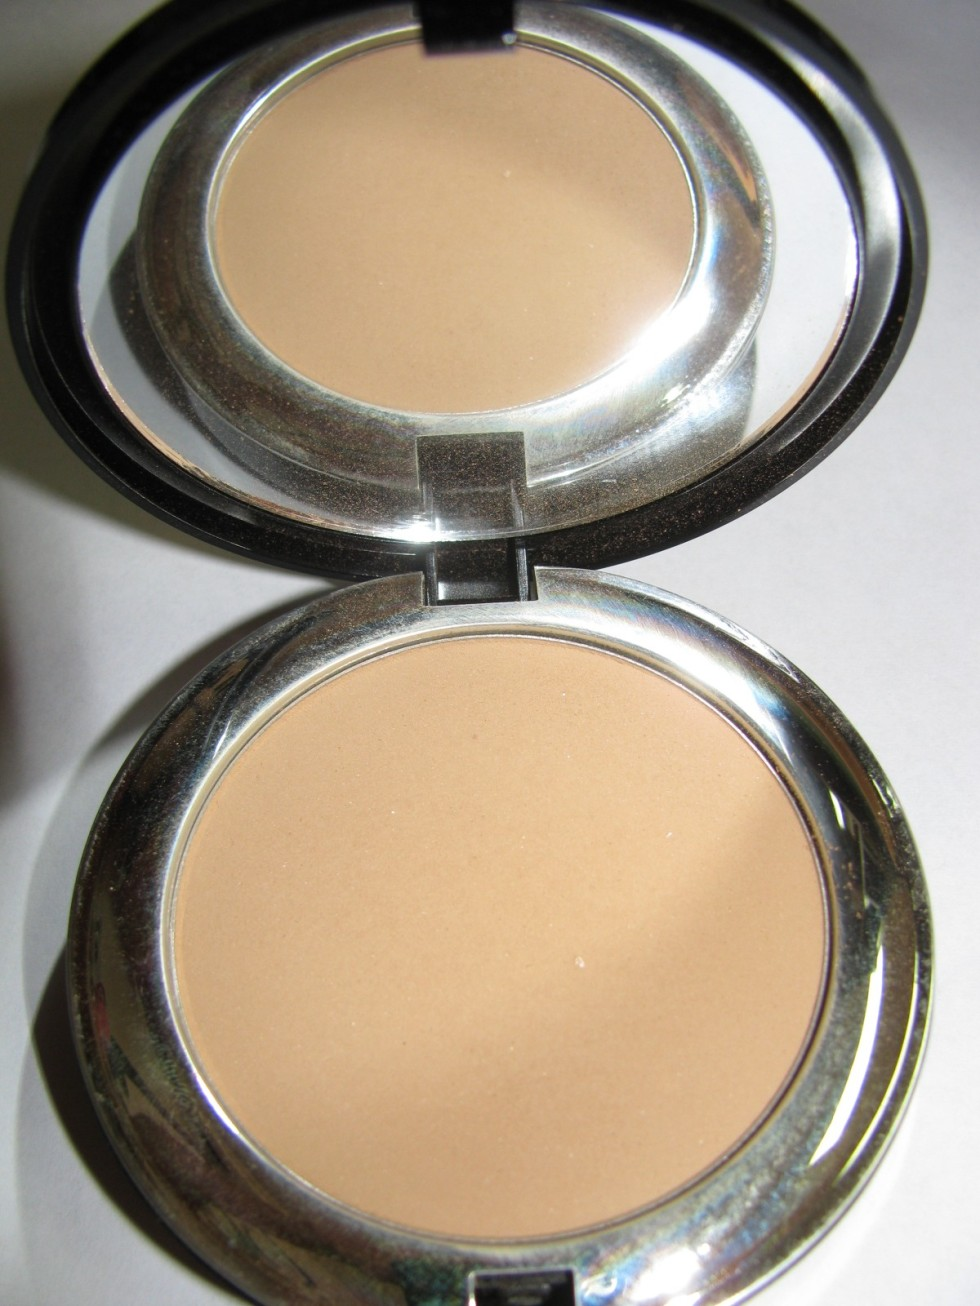 BELLAPIERRE COMPACT MINERAL FOUNDATION : NUTMEG